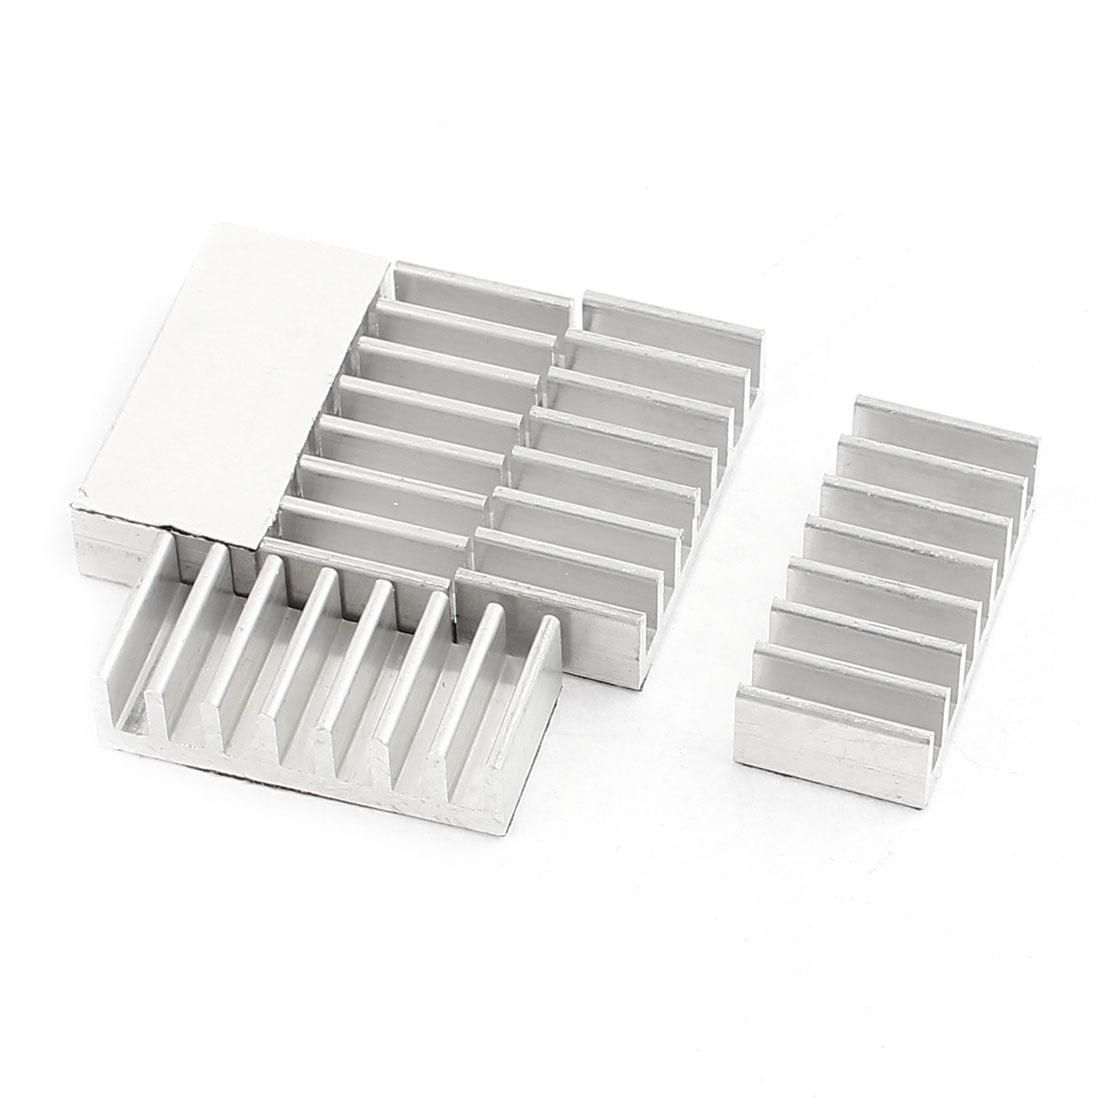 14 x 30 x 8mm 5Pcs x Aluminum Heatsink Cooling Fin for LED Power Memory Chip